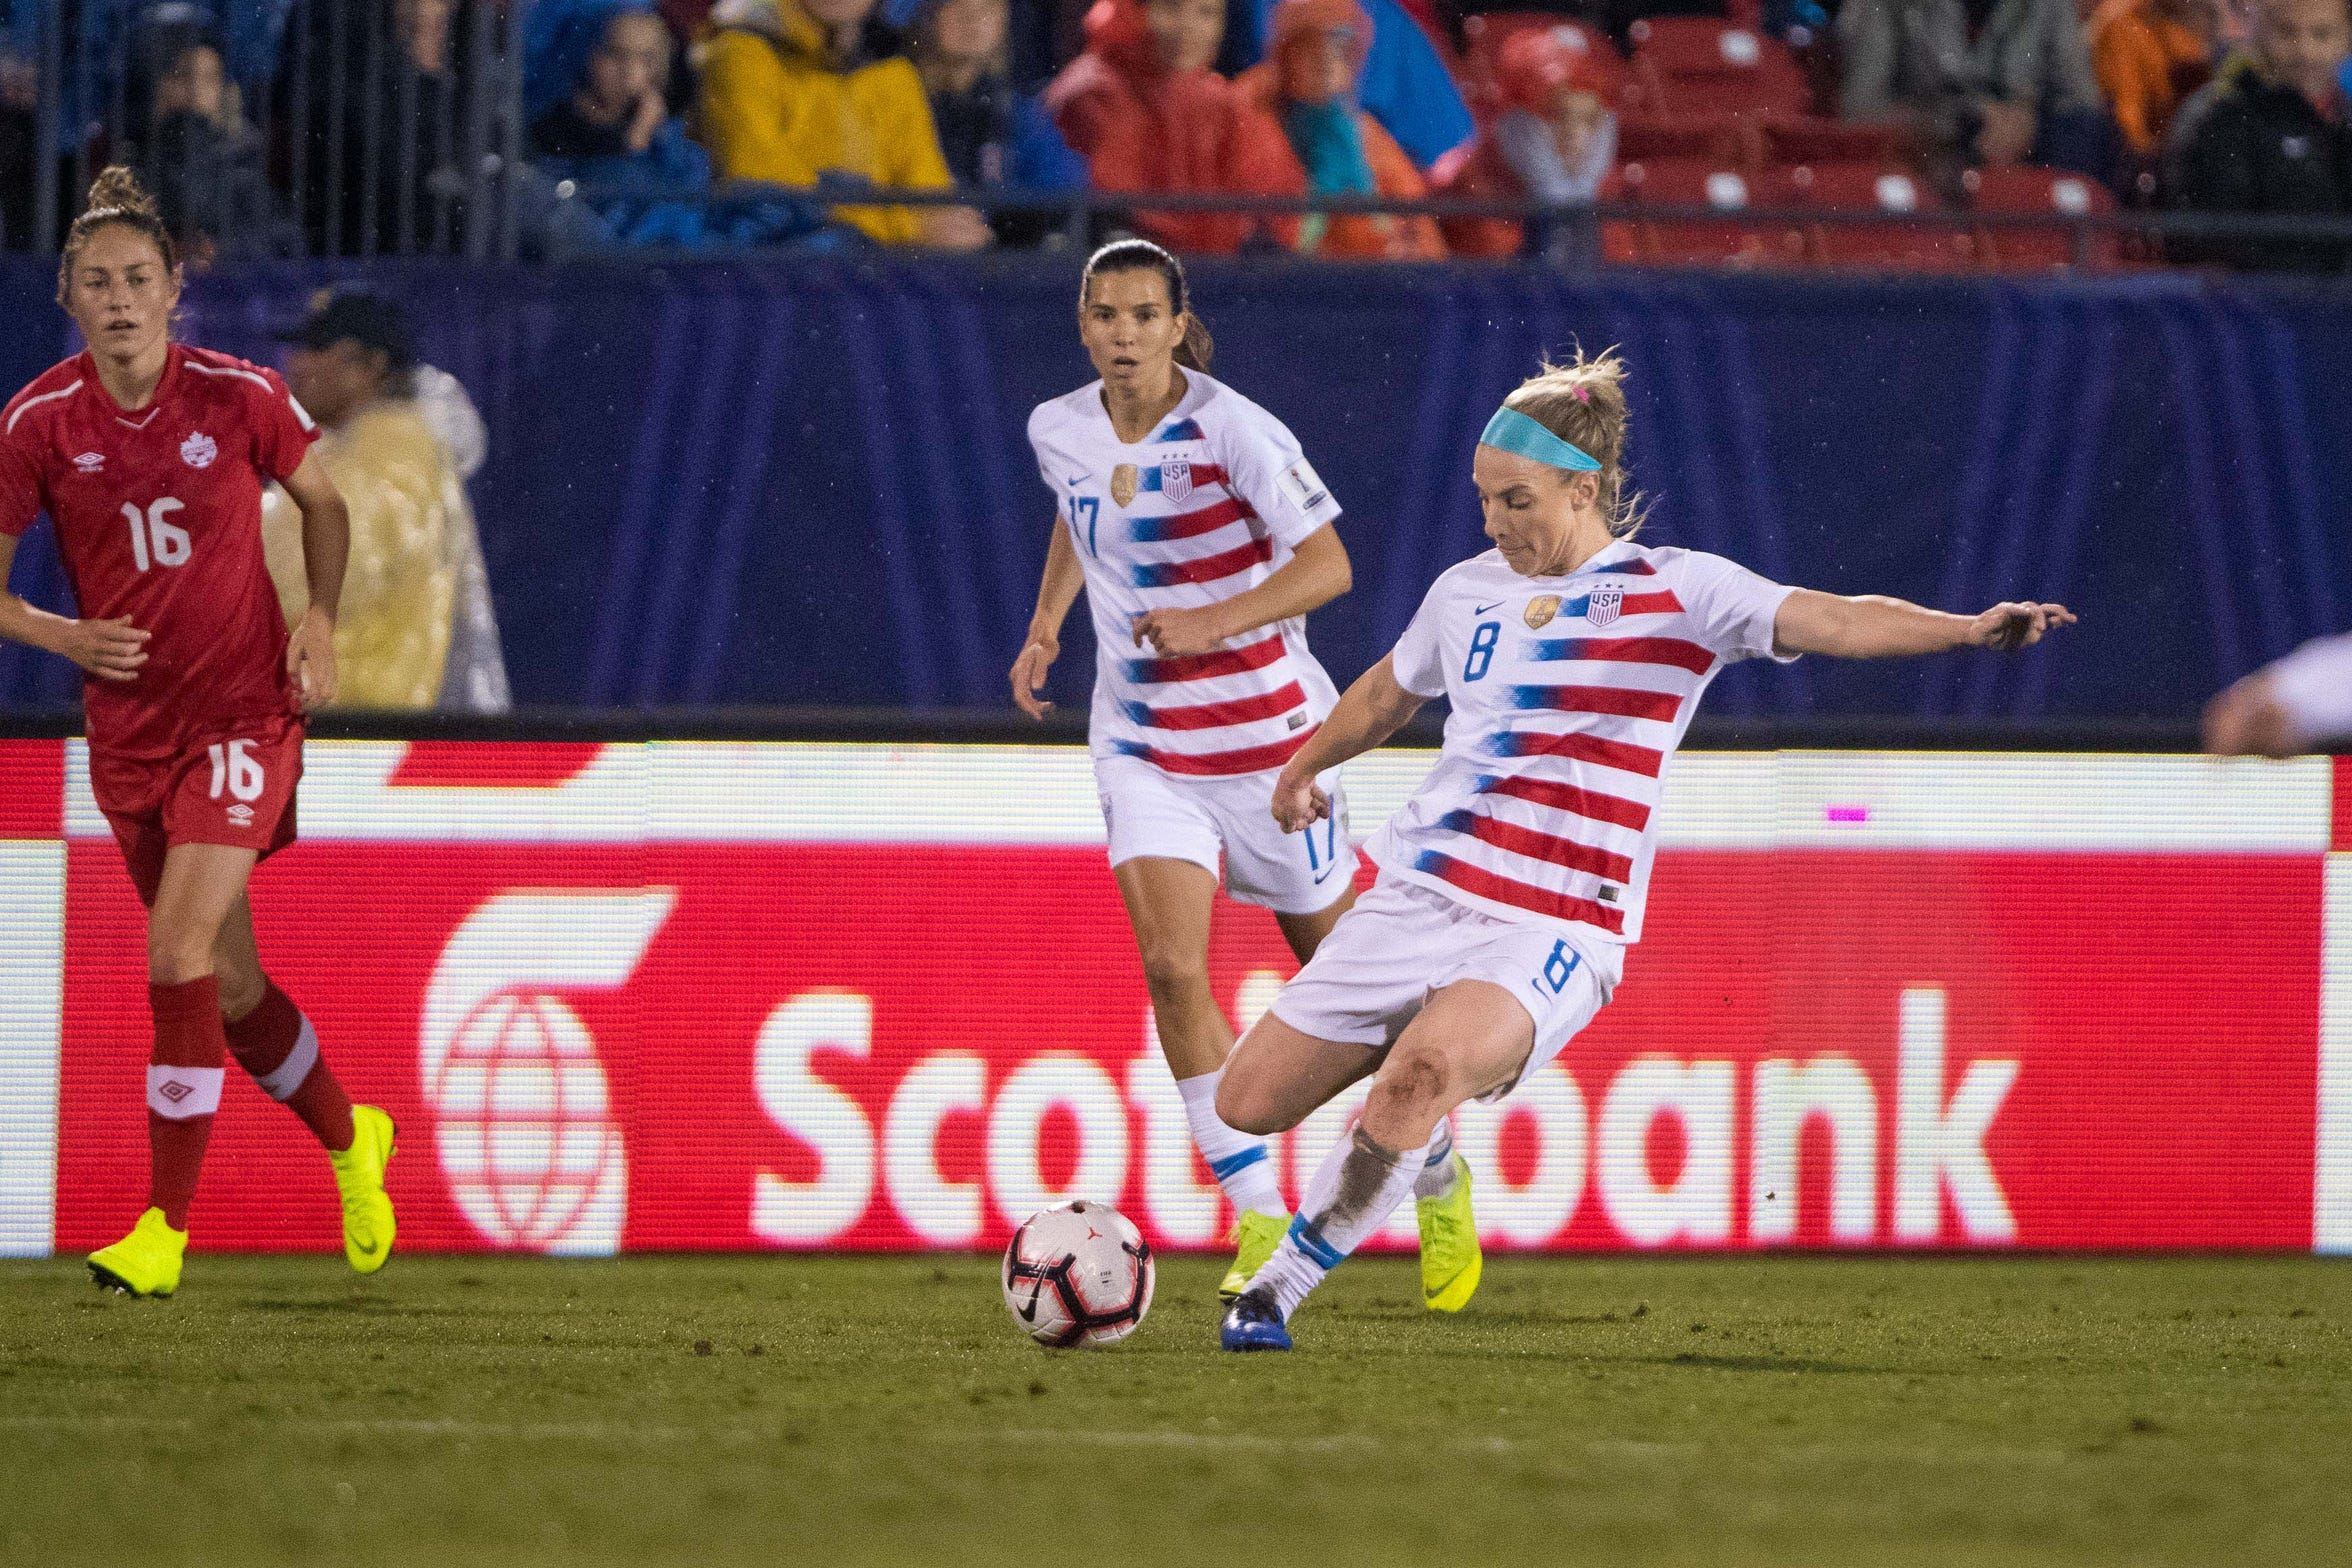 """""""(She has) kind of that old-school mentality in our current center back midfielder role. ... She's actually a very mild-mannered and sweet person off the field."""""""